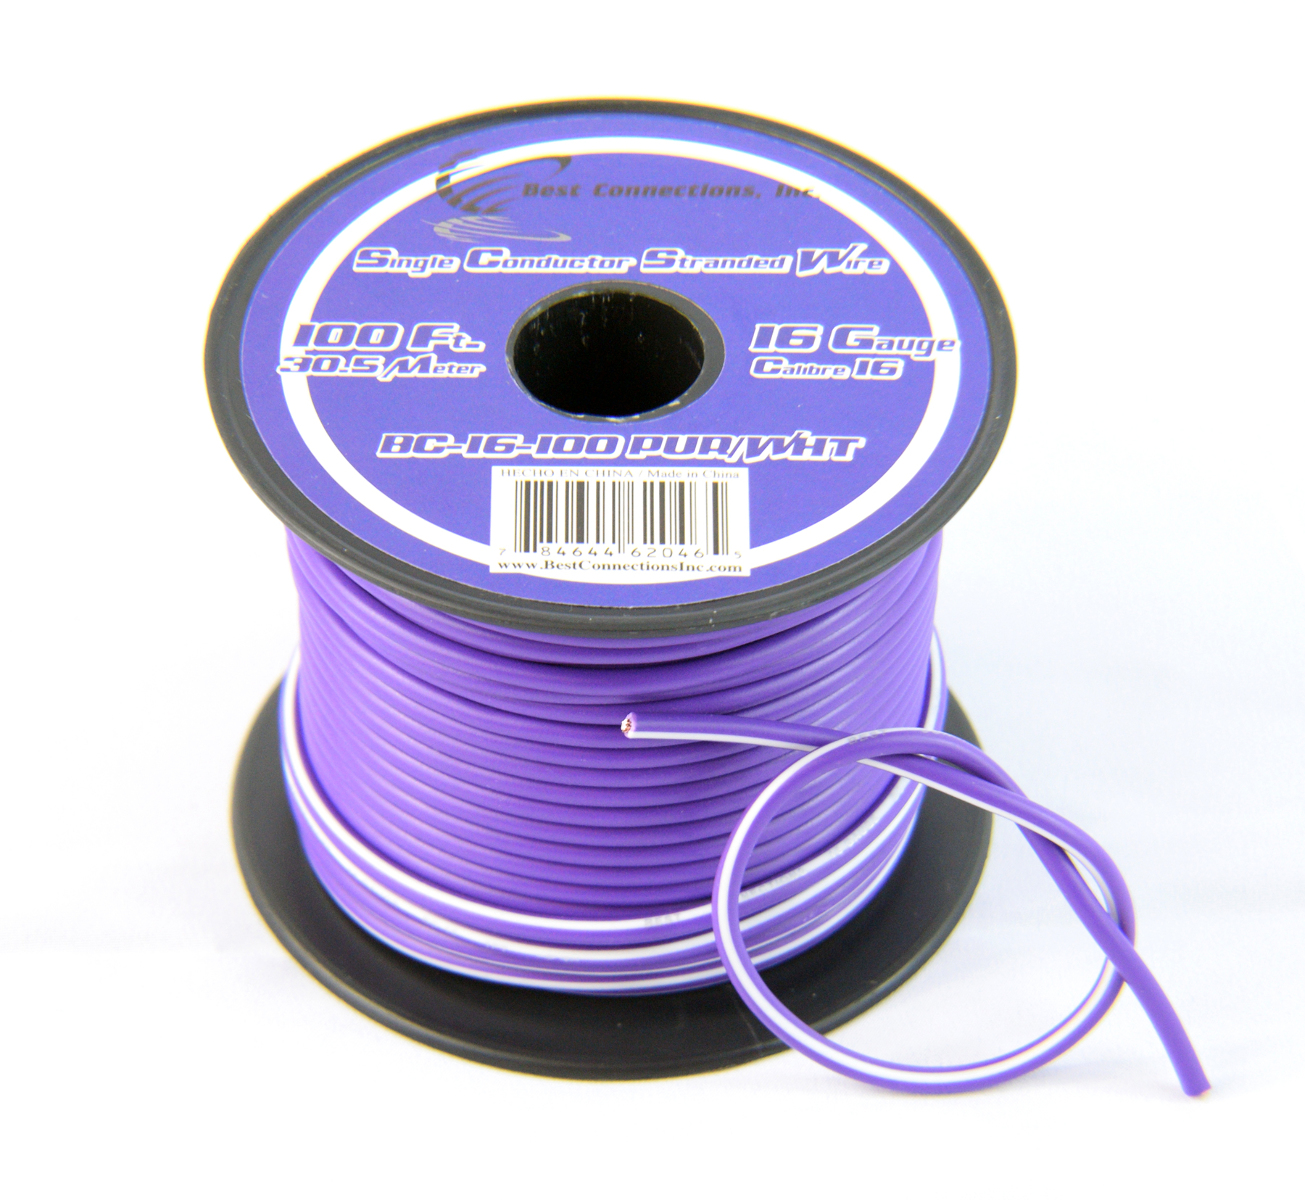 16 Gauge Purple with White Stripe Tracer Wire - 100' FT